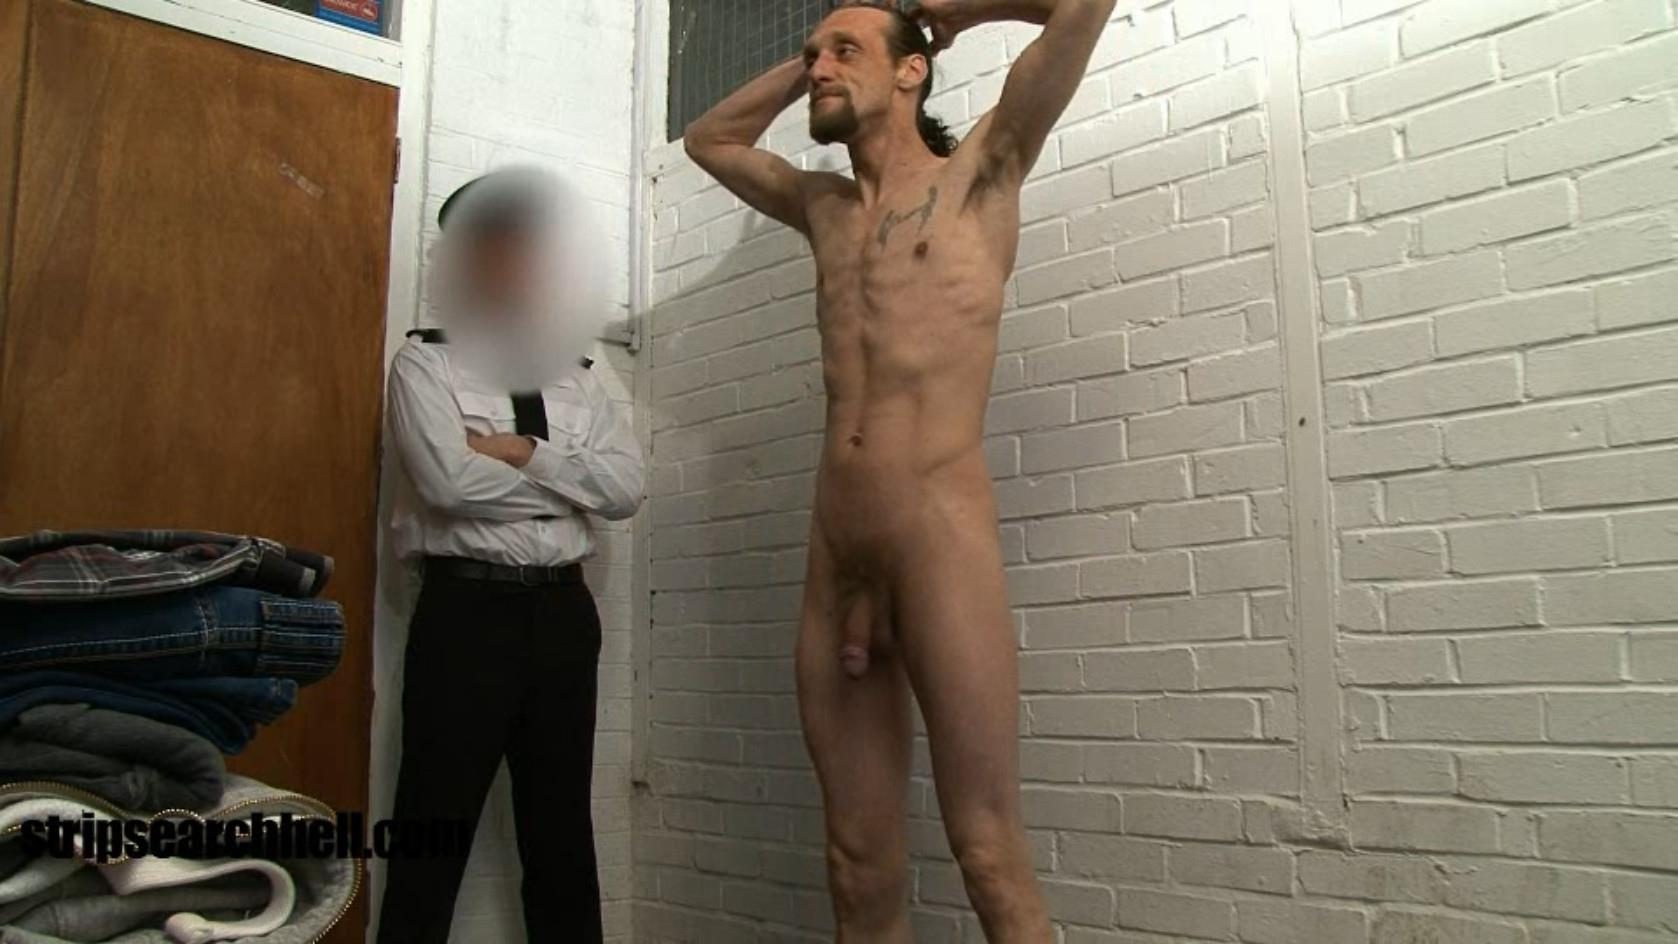 Prision-Strip-Search-Pictures-Guy-With-A-Big-Cock-05 Hidden Prison Strip Search Video And A Guy With A Big Dick